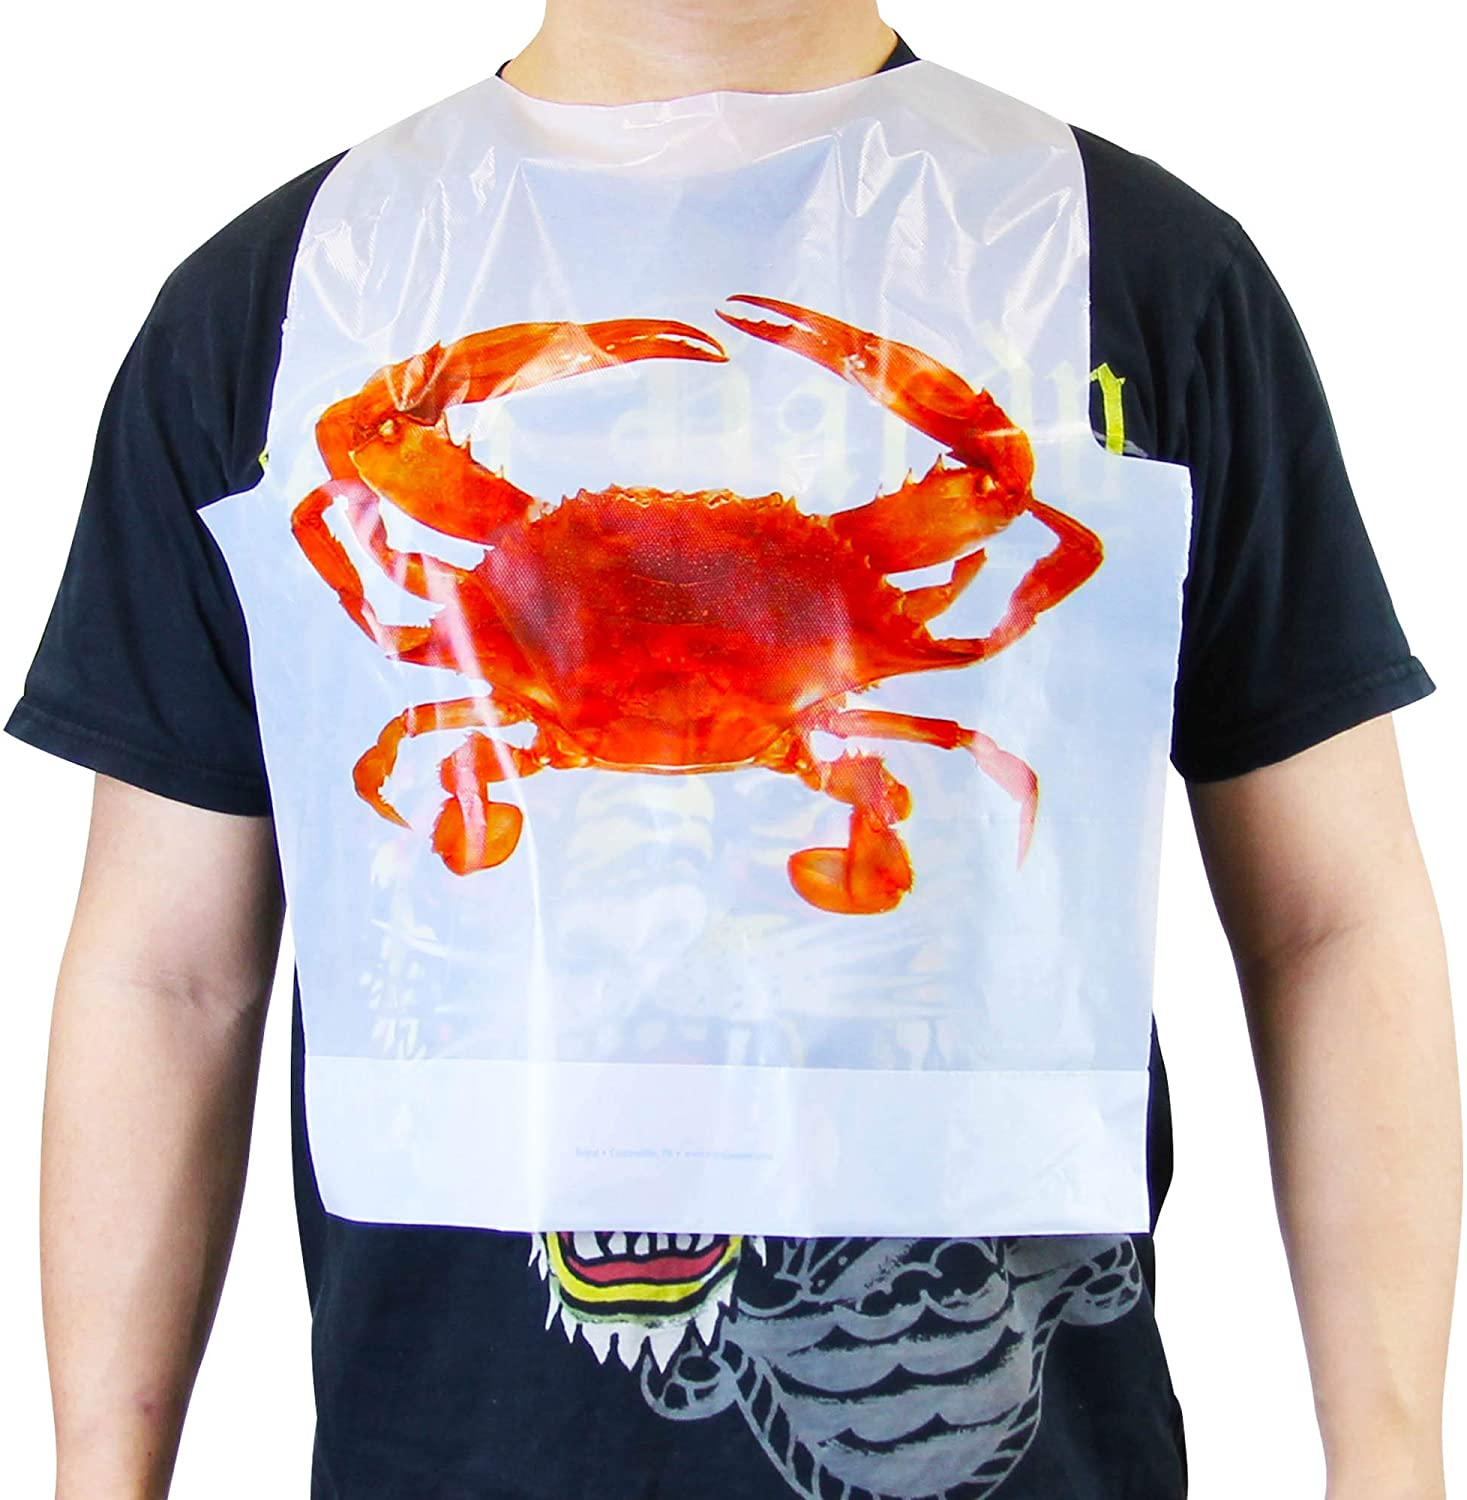 [50 Pack] Disposable 22 Inch Adult Poly Crab Bibs to Protect Clothes for Lobster Feasts, Seafood Restaurants, Crawfish Parties and Special Events